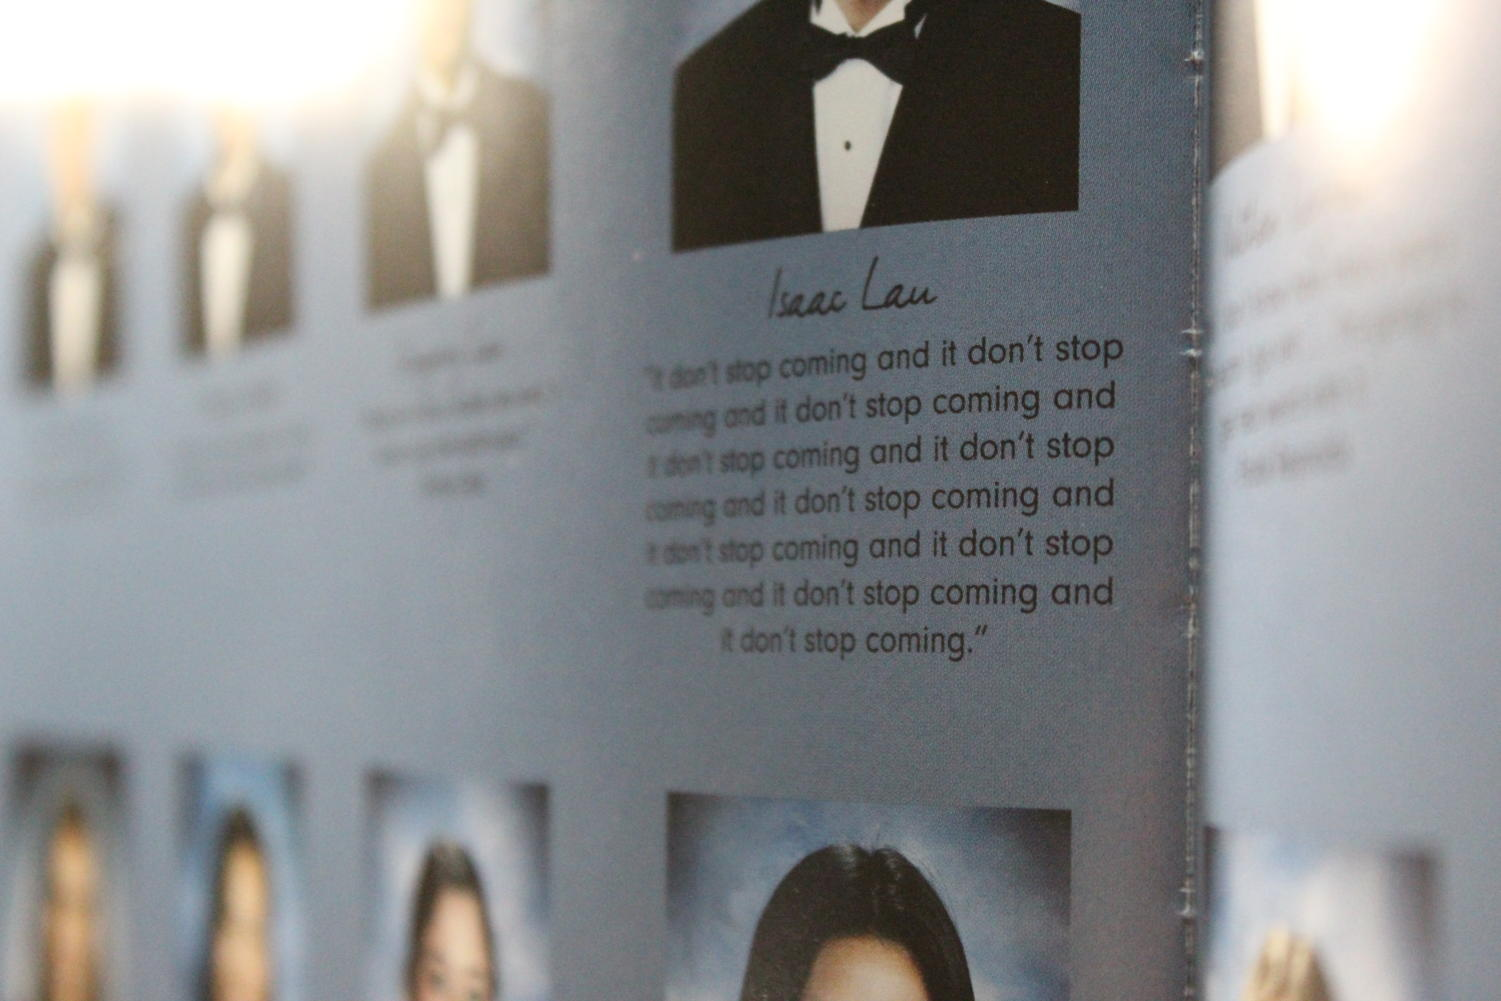 Senior quotes from page 122 of the 2017 yearbook